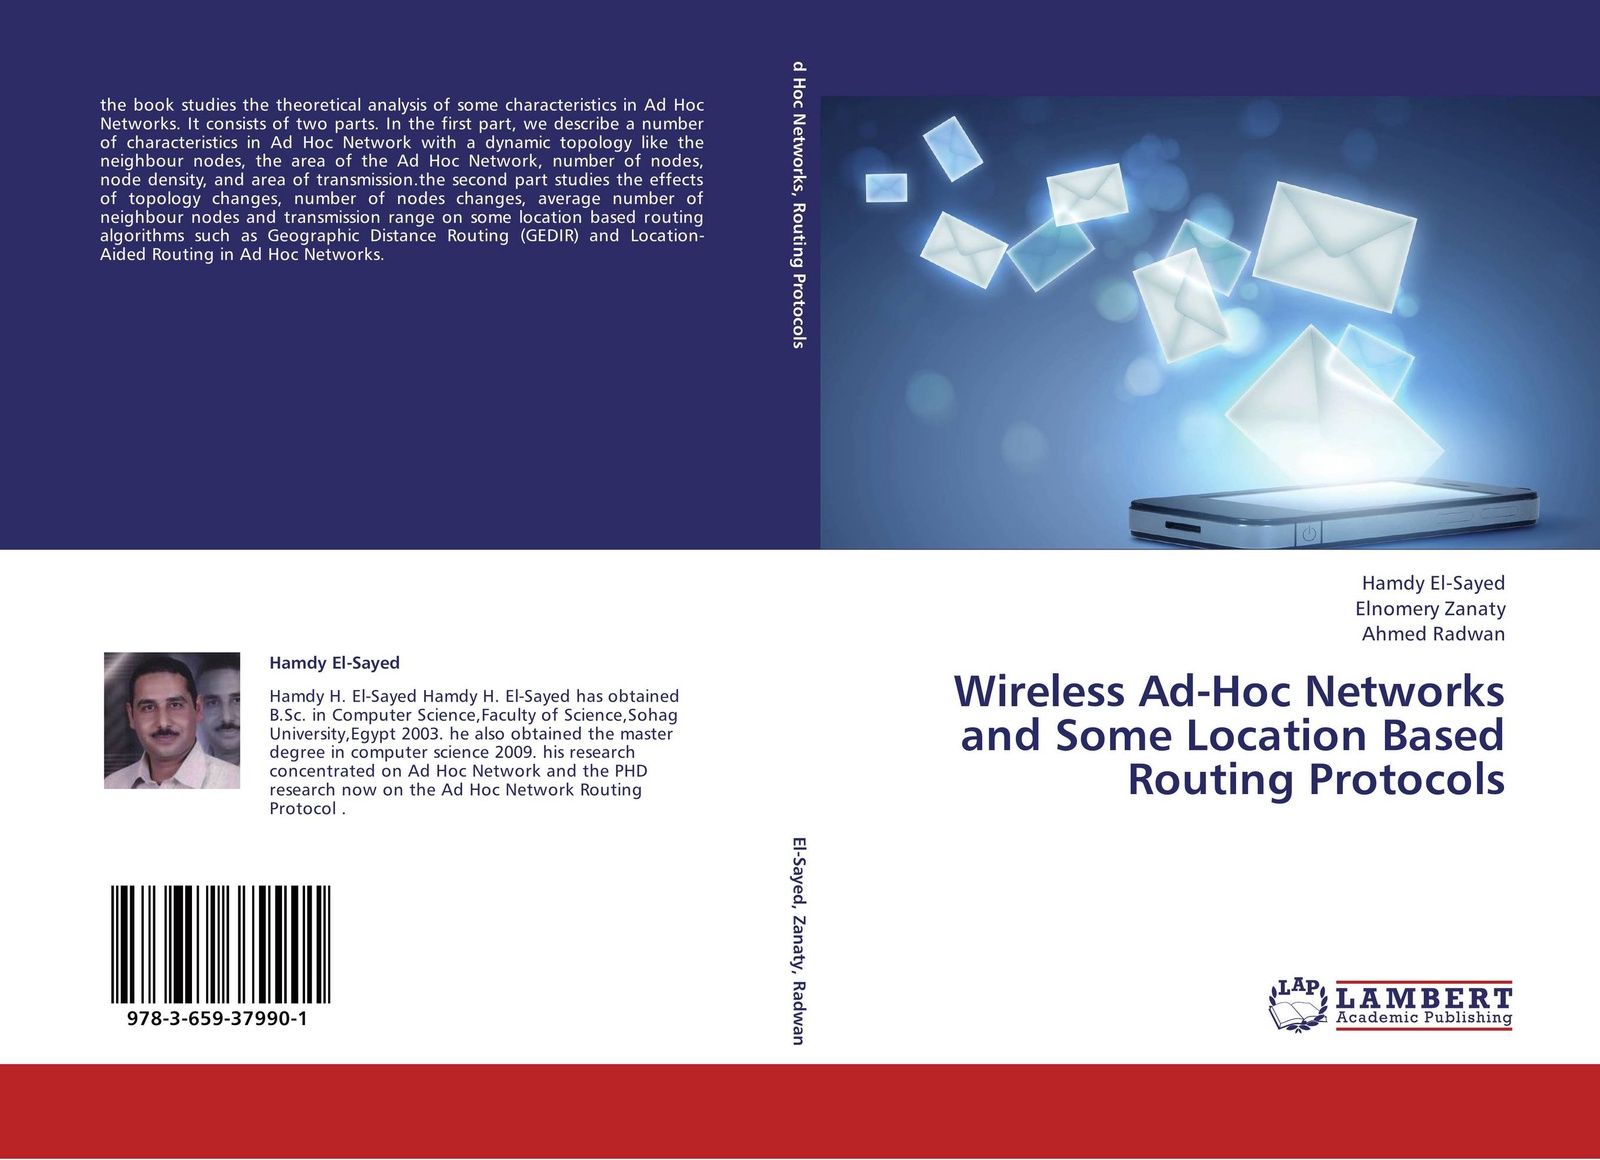 Hamdy El-Sayed,Elnomery Zanaty and Ahmed Radwan Wireless Ad-Hoc Networks and Some Location Based Routing Protocols subir biswas security and privacy in vehicular ad hoc networks